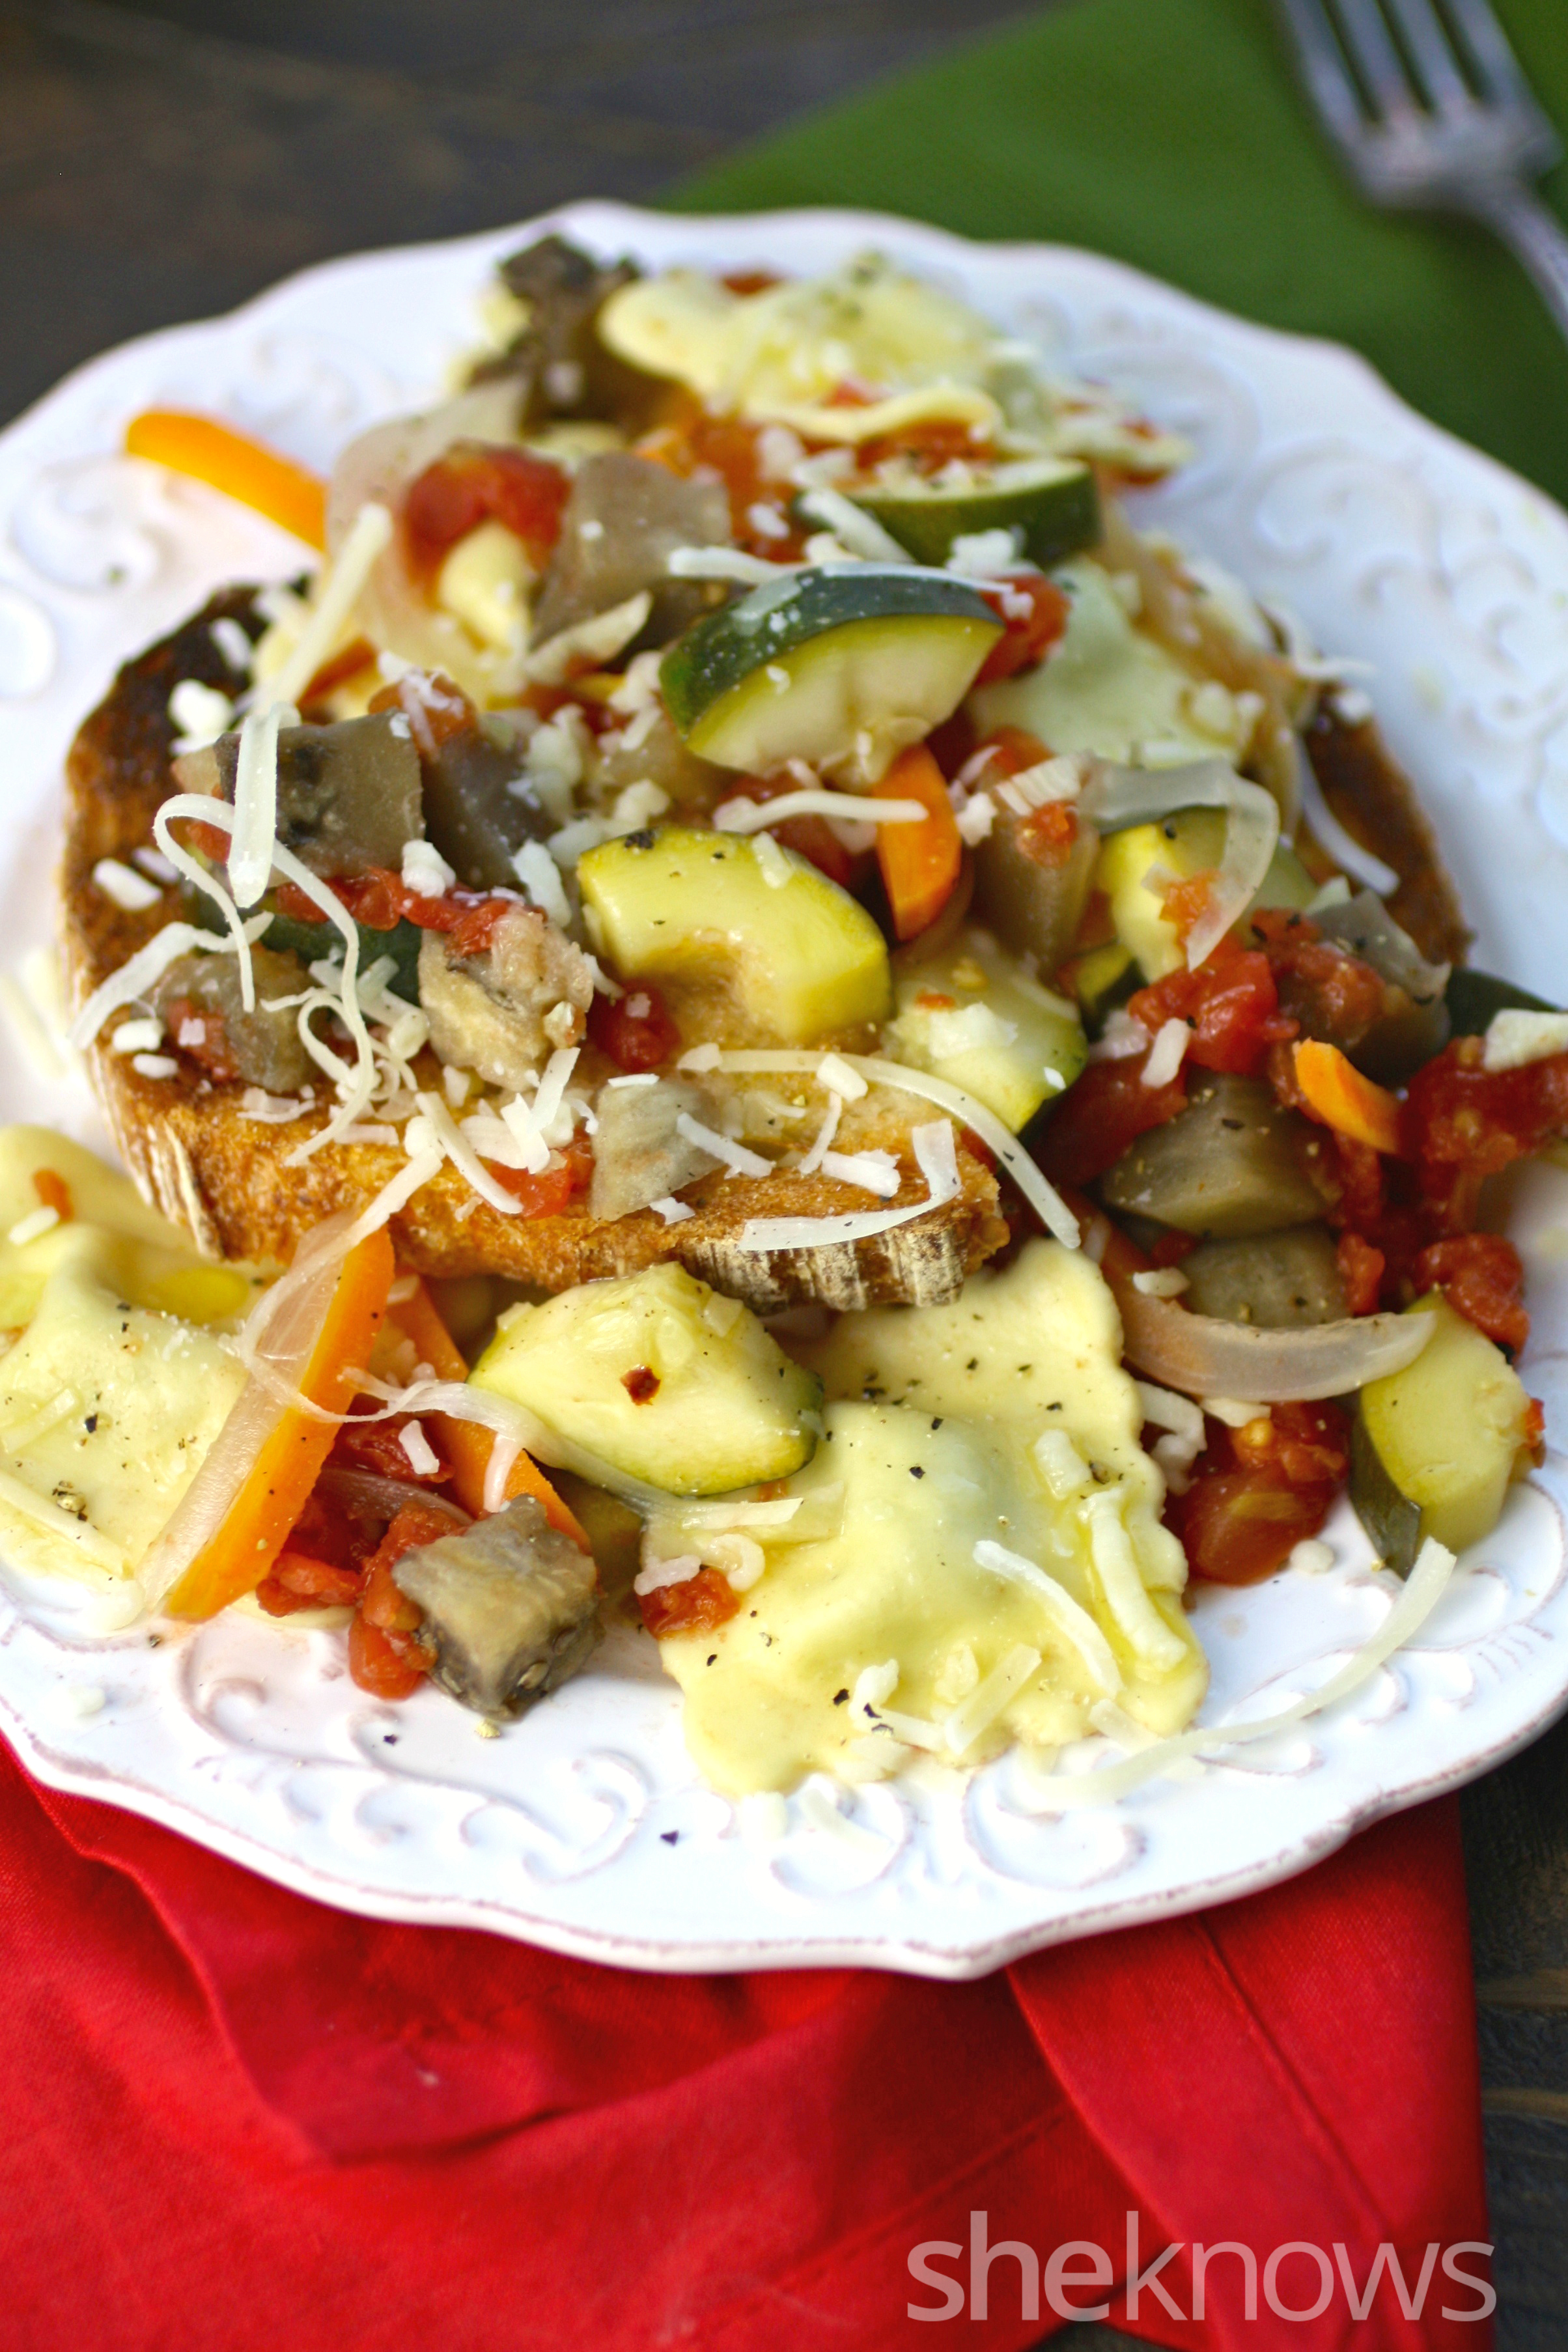 Slow cooker Sunday ratatouille over ravioli is a combo of both French and Italian favorites. It makes a great meal!